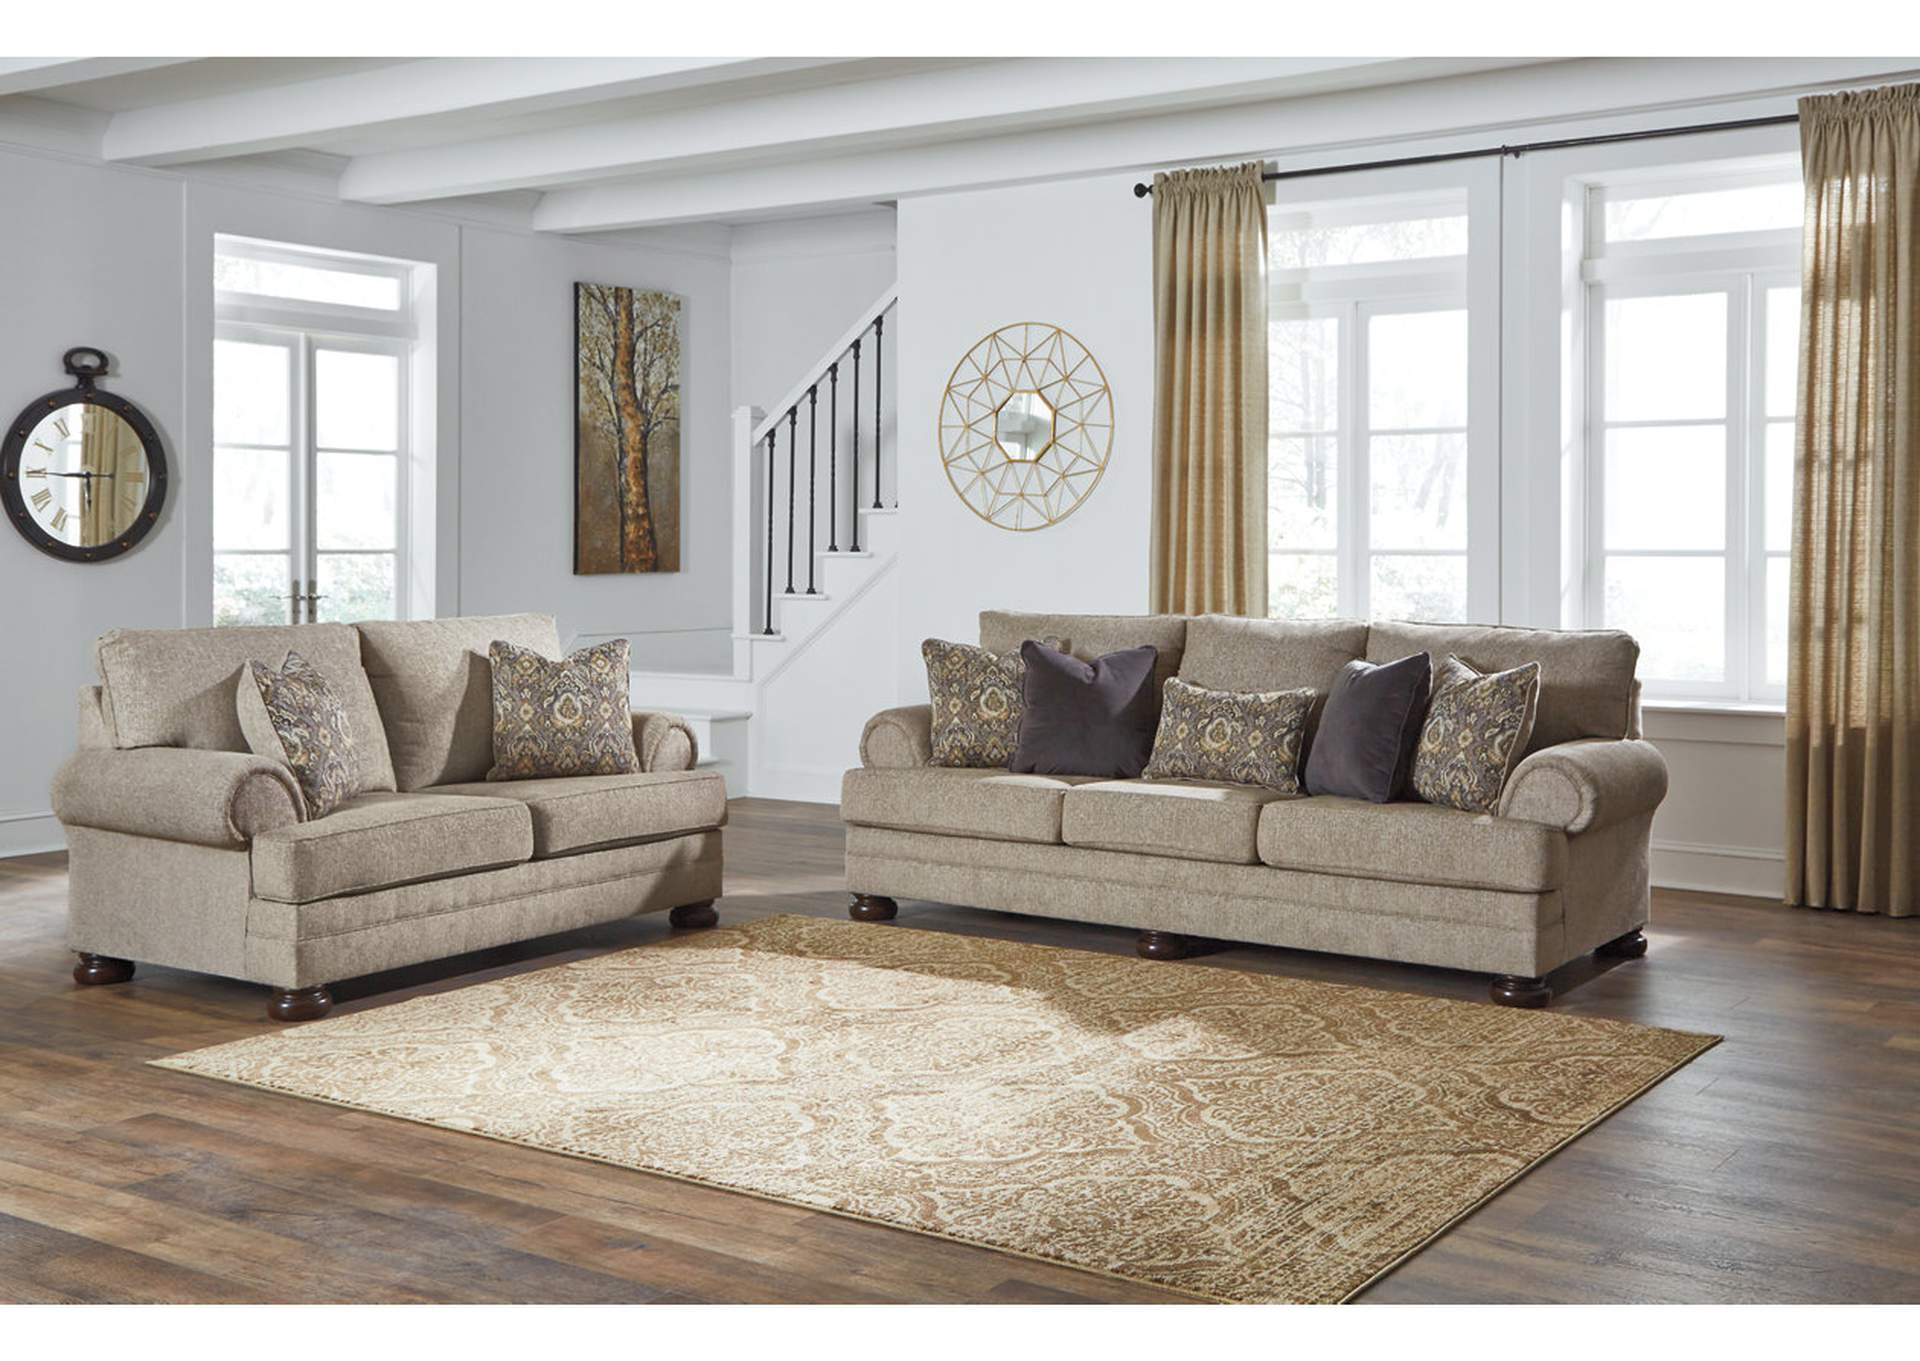 Super Premier Furniture Gallery Kananwood Oatmeal Sofa And Loveseat Pabps2019 Chair Design Images Pabps2019Com